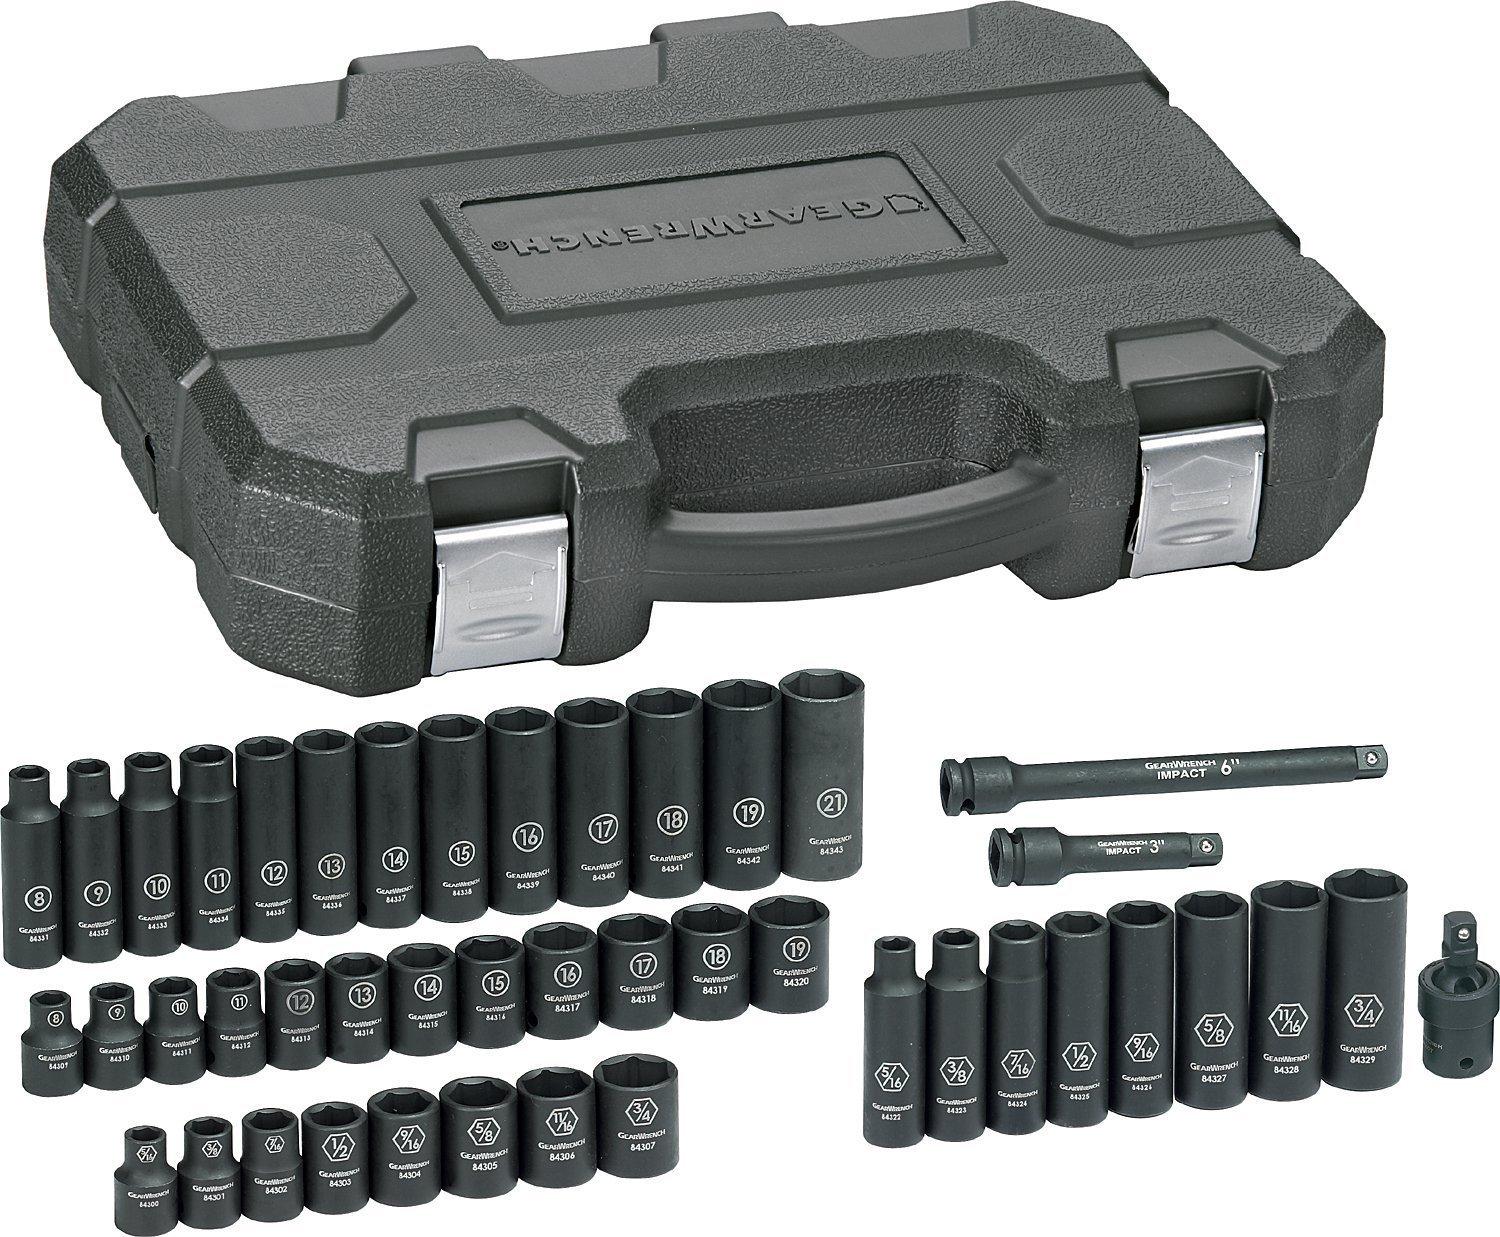 GEARWRENCH 44 Pc. 3/8'' Drive 6 Point Standard & Deep Impact SAE/Metric Socket Set - 84916N by GearWrench